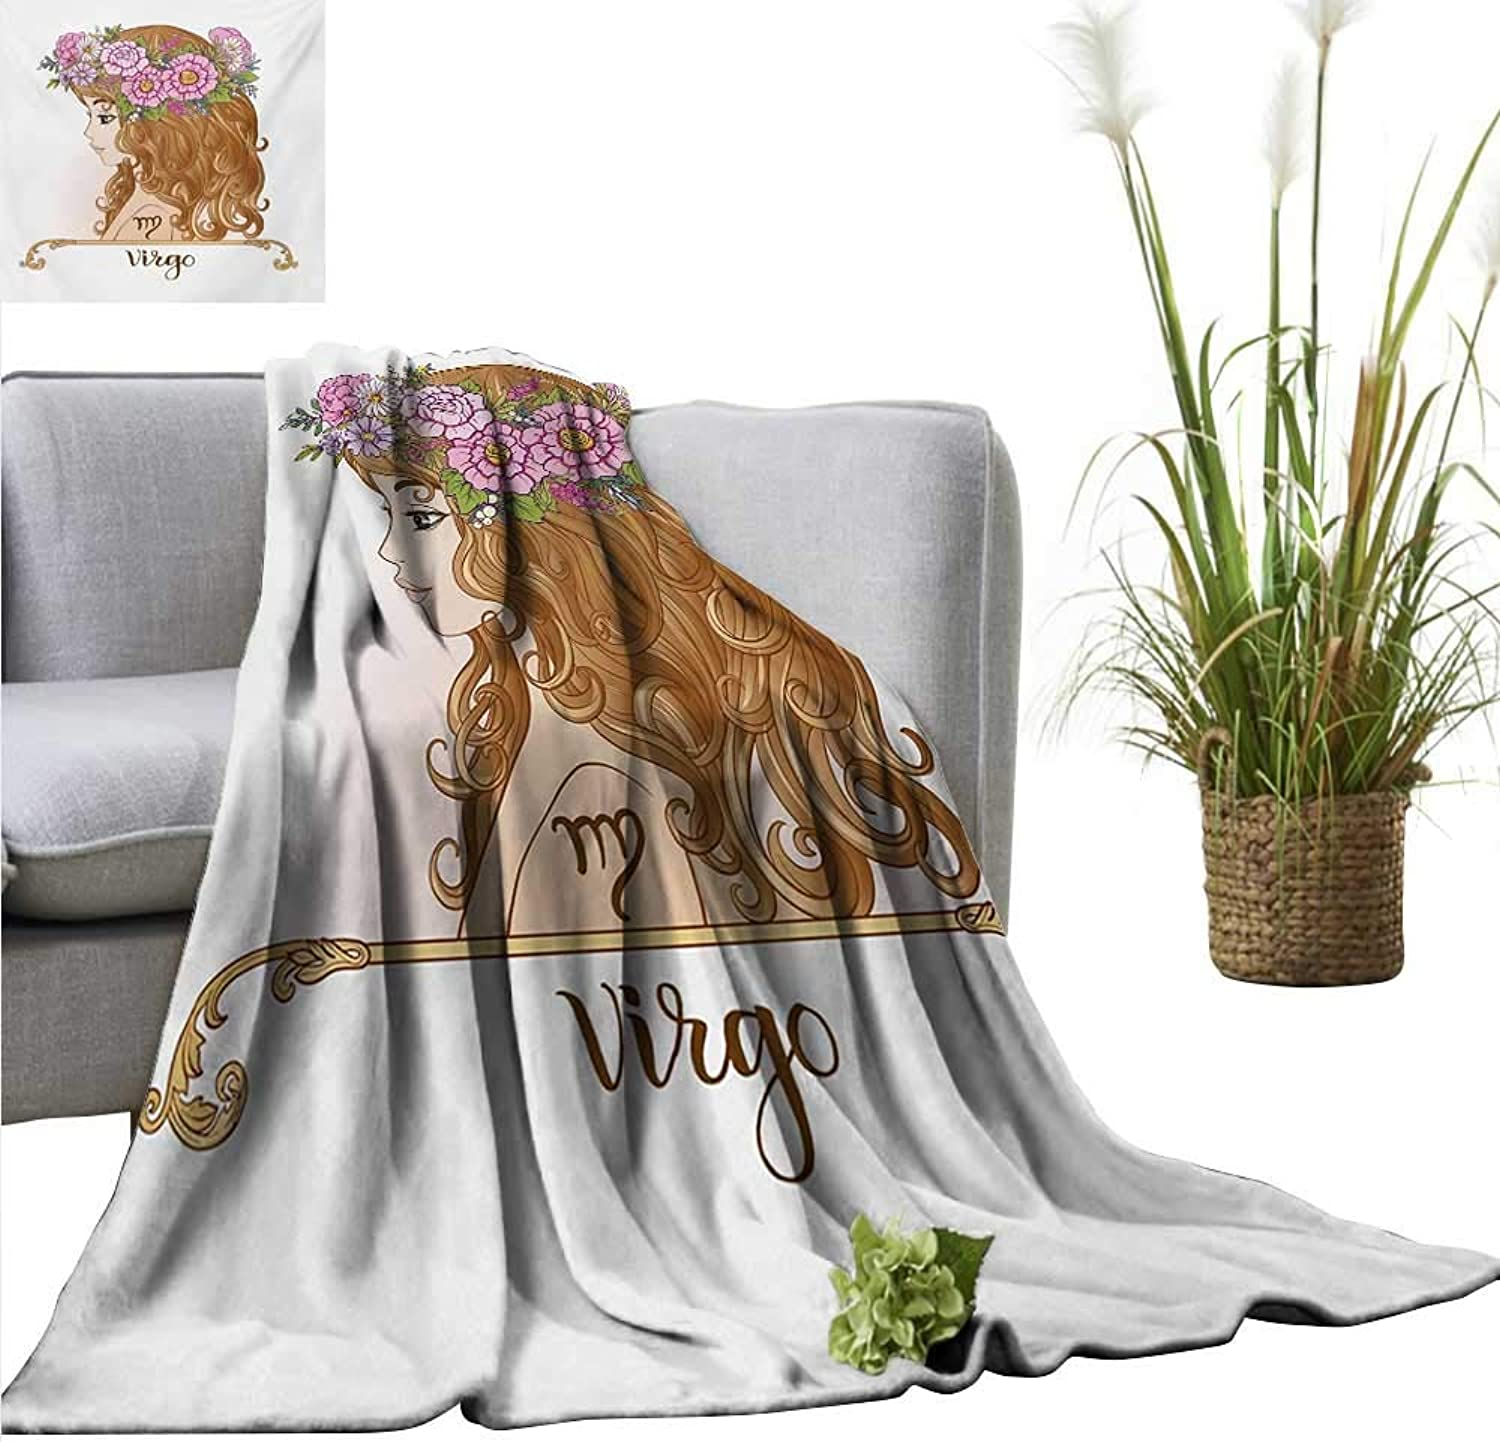 Homehot Virgo Blanket Sheets Girl with Flower Crown Astrology Inspired Image Fortune Telling Illustration Ultra Soft and Warm Hypoallergenic 54  Wx72 L Pink Caramel Green